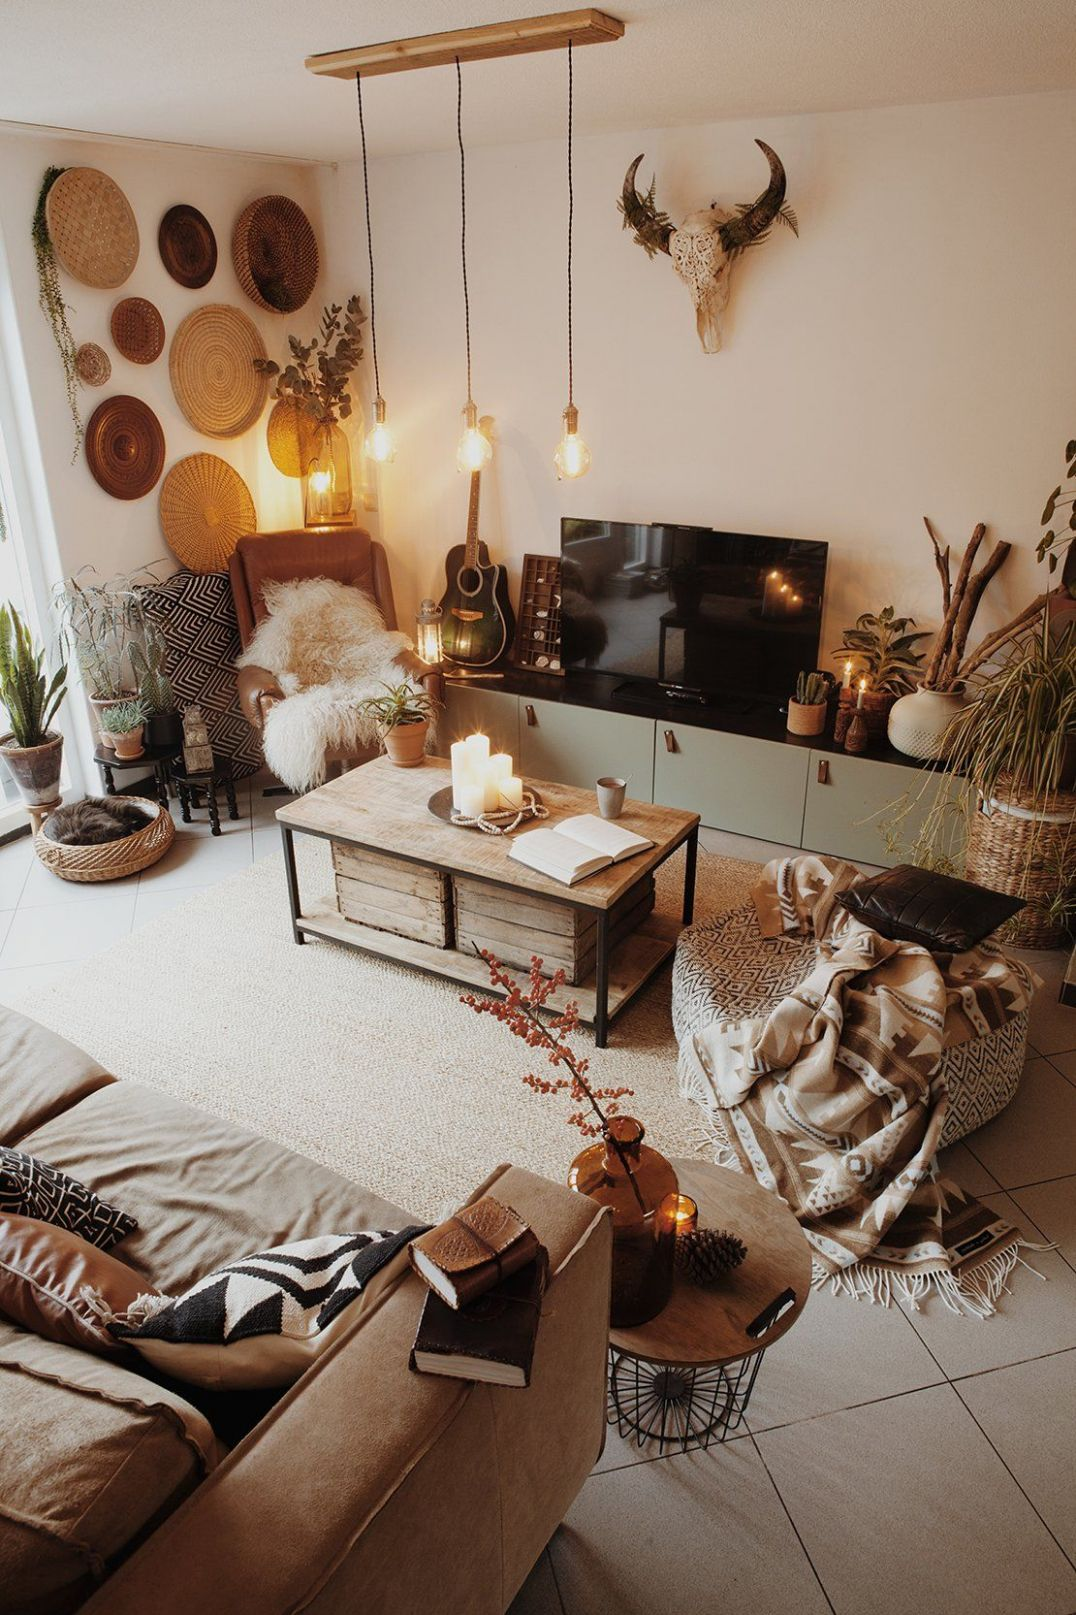 Netherlands Home Tour | Cute home decor, Front room, Bohemian ...